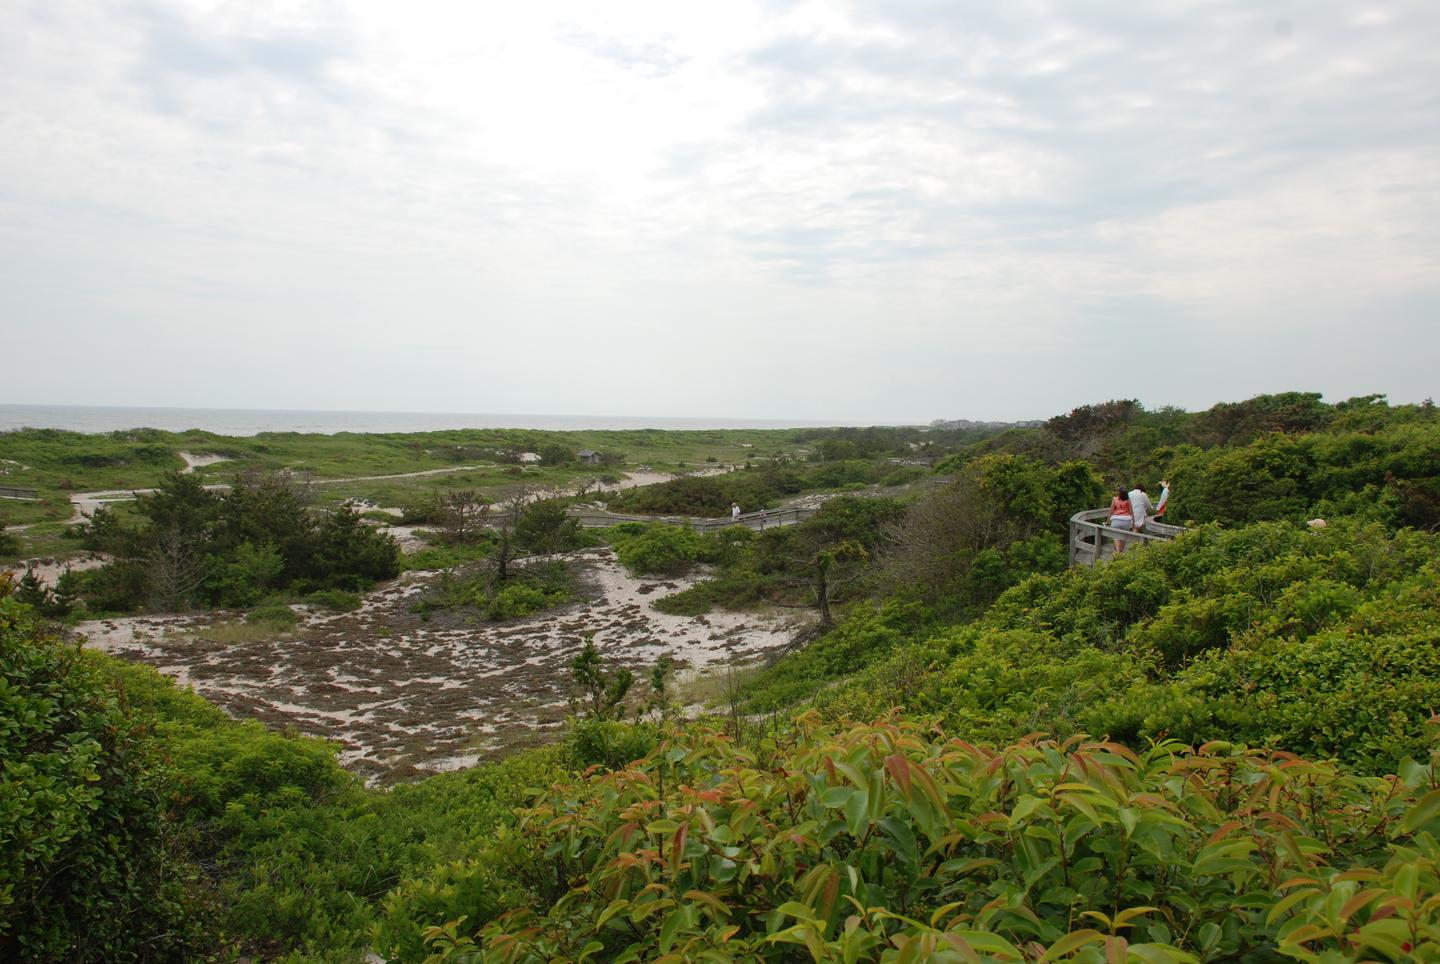 View of primary dune from Sunken Forest overlookGet one of the best boardwalk views on a walk through the Sunken Forest - a more than 350 year-old, globally rare ecosystem.